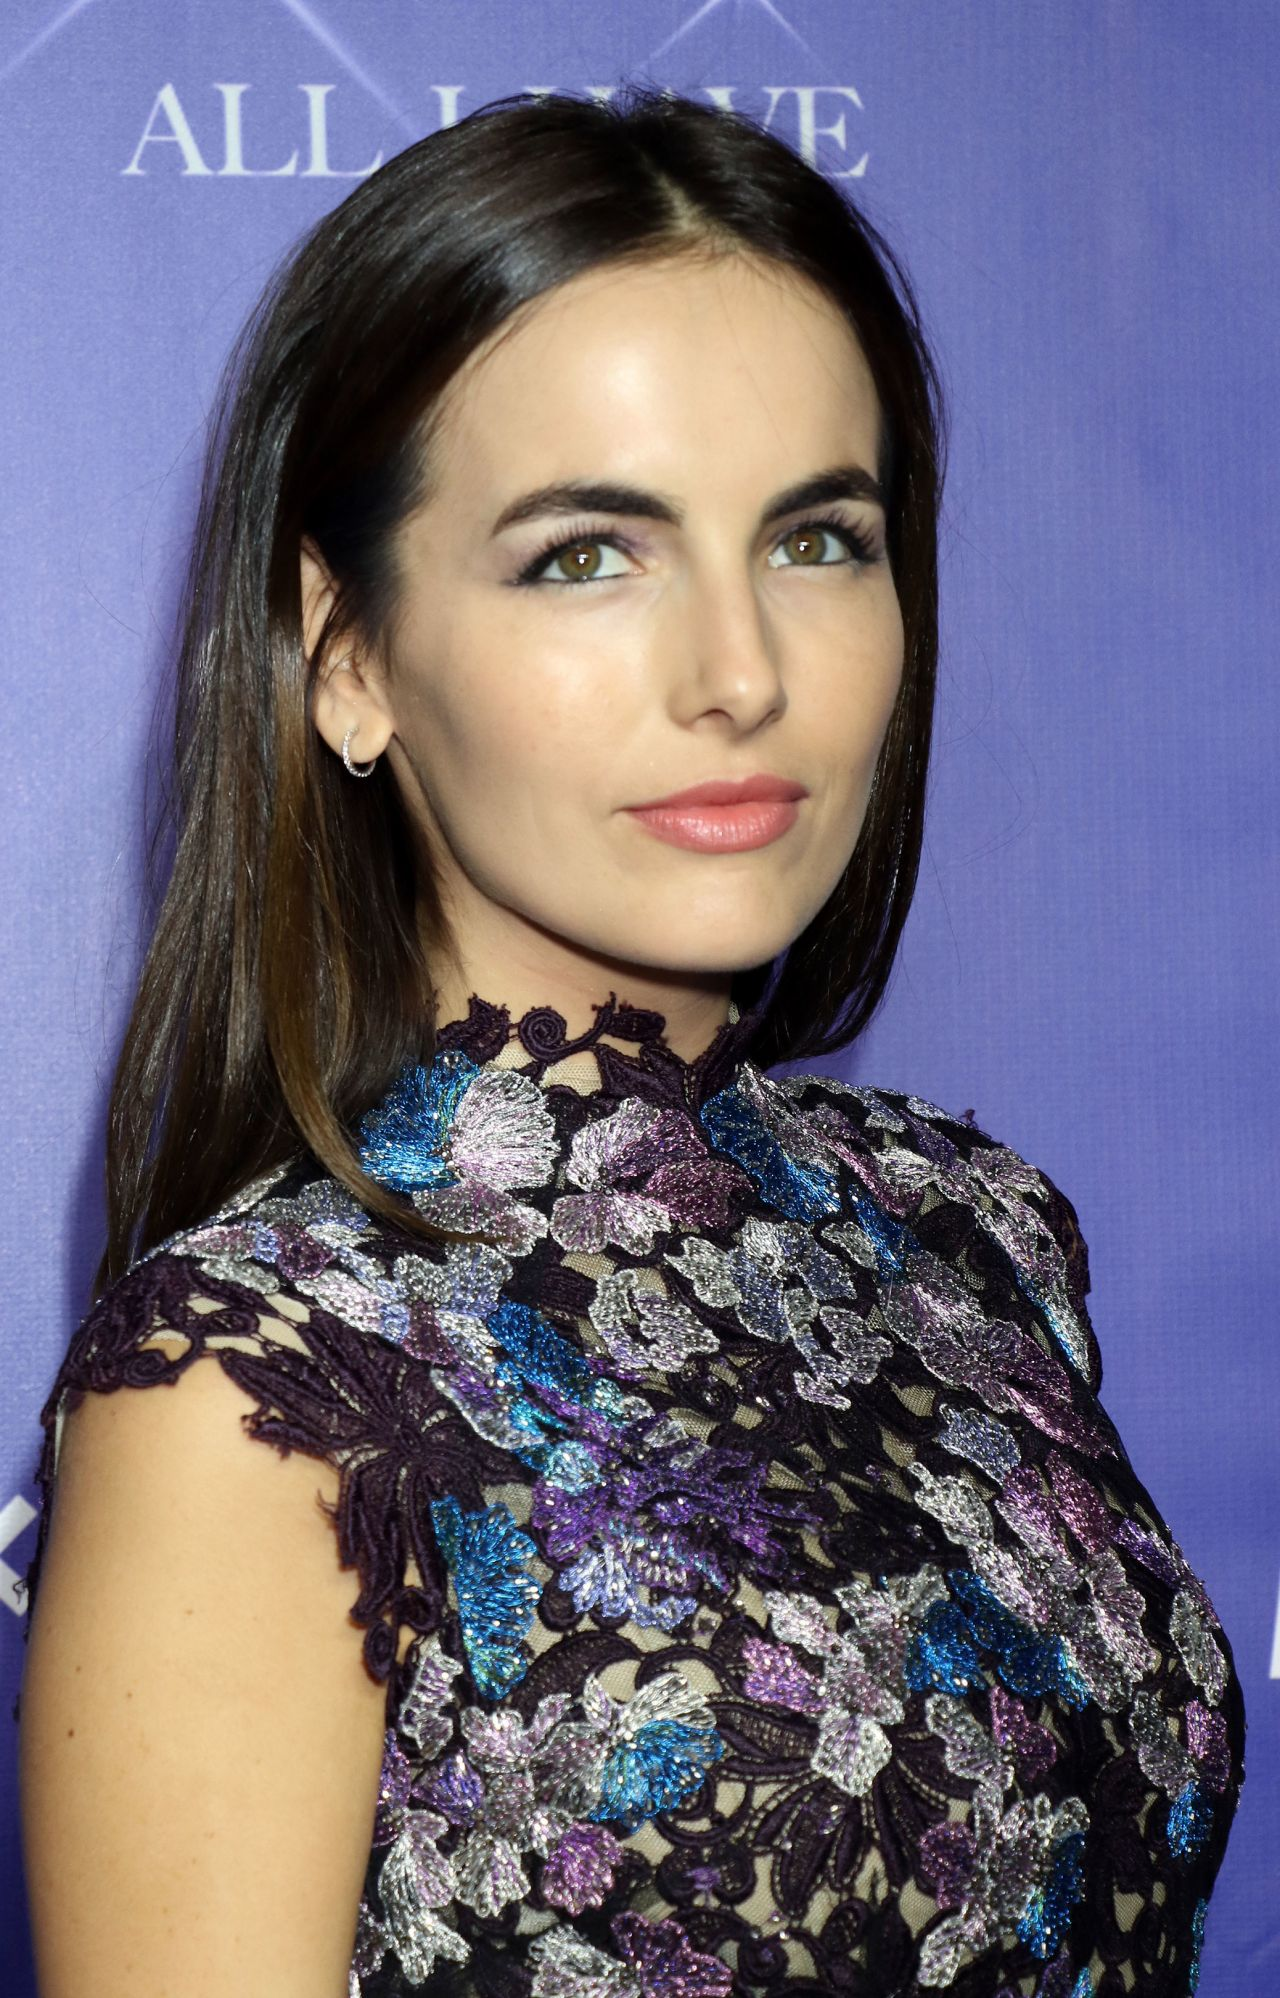 camilla-belle-jennifer-lopez-s-all-i-have-residency-after-party-in-las-vegas-january-2016-5